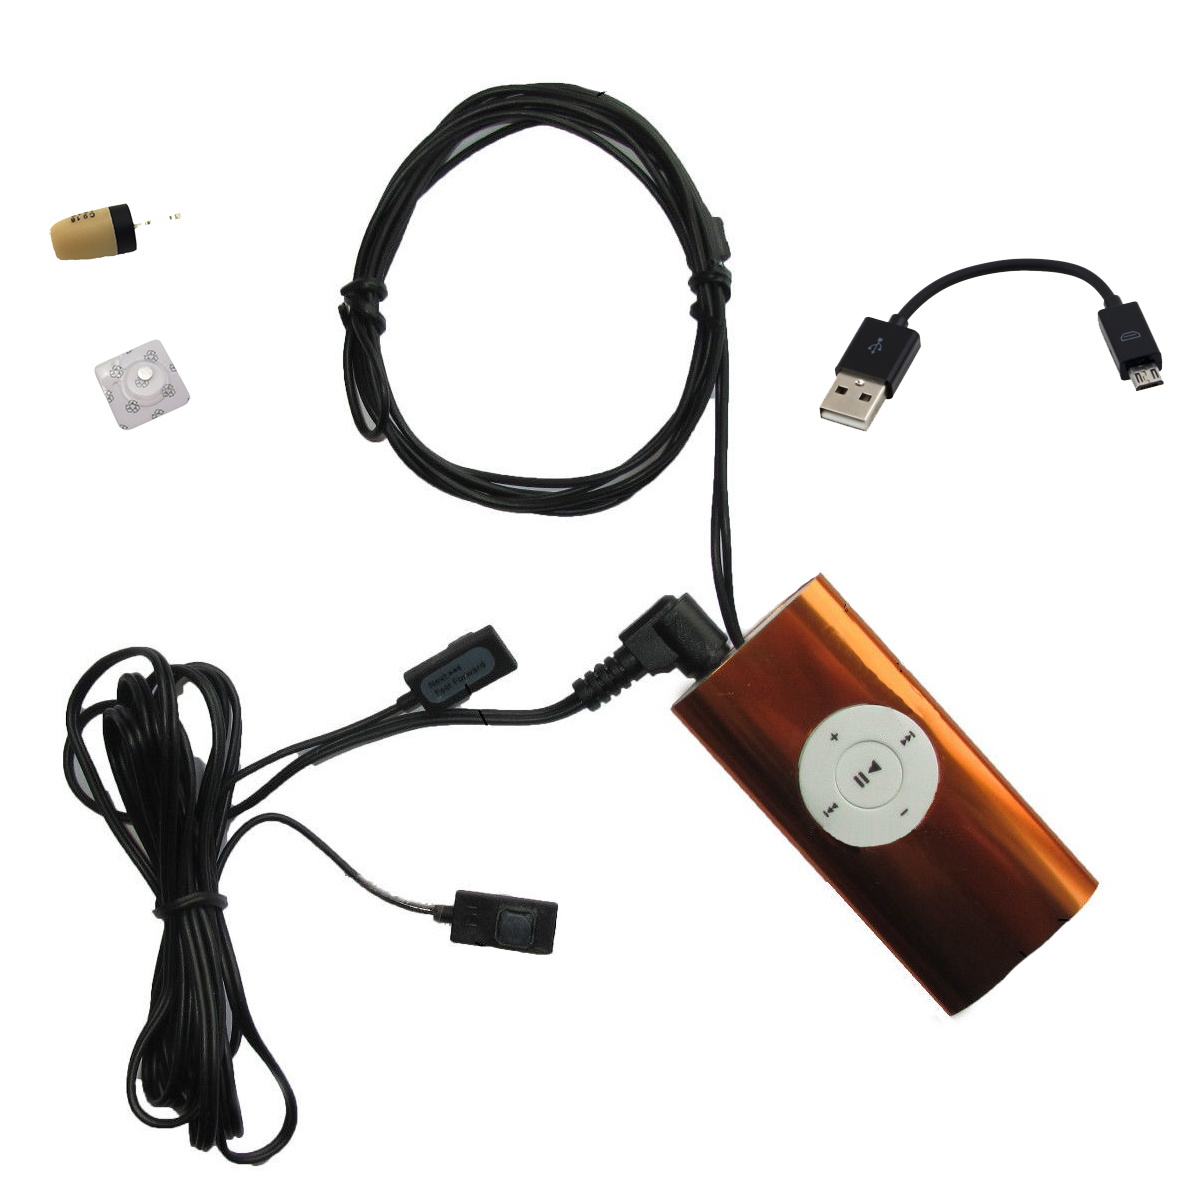 exam cheat mp3 player with hidden control buttons. Black Bedroom Furniture Sets. Home Design Ideas